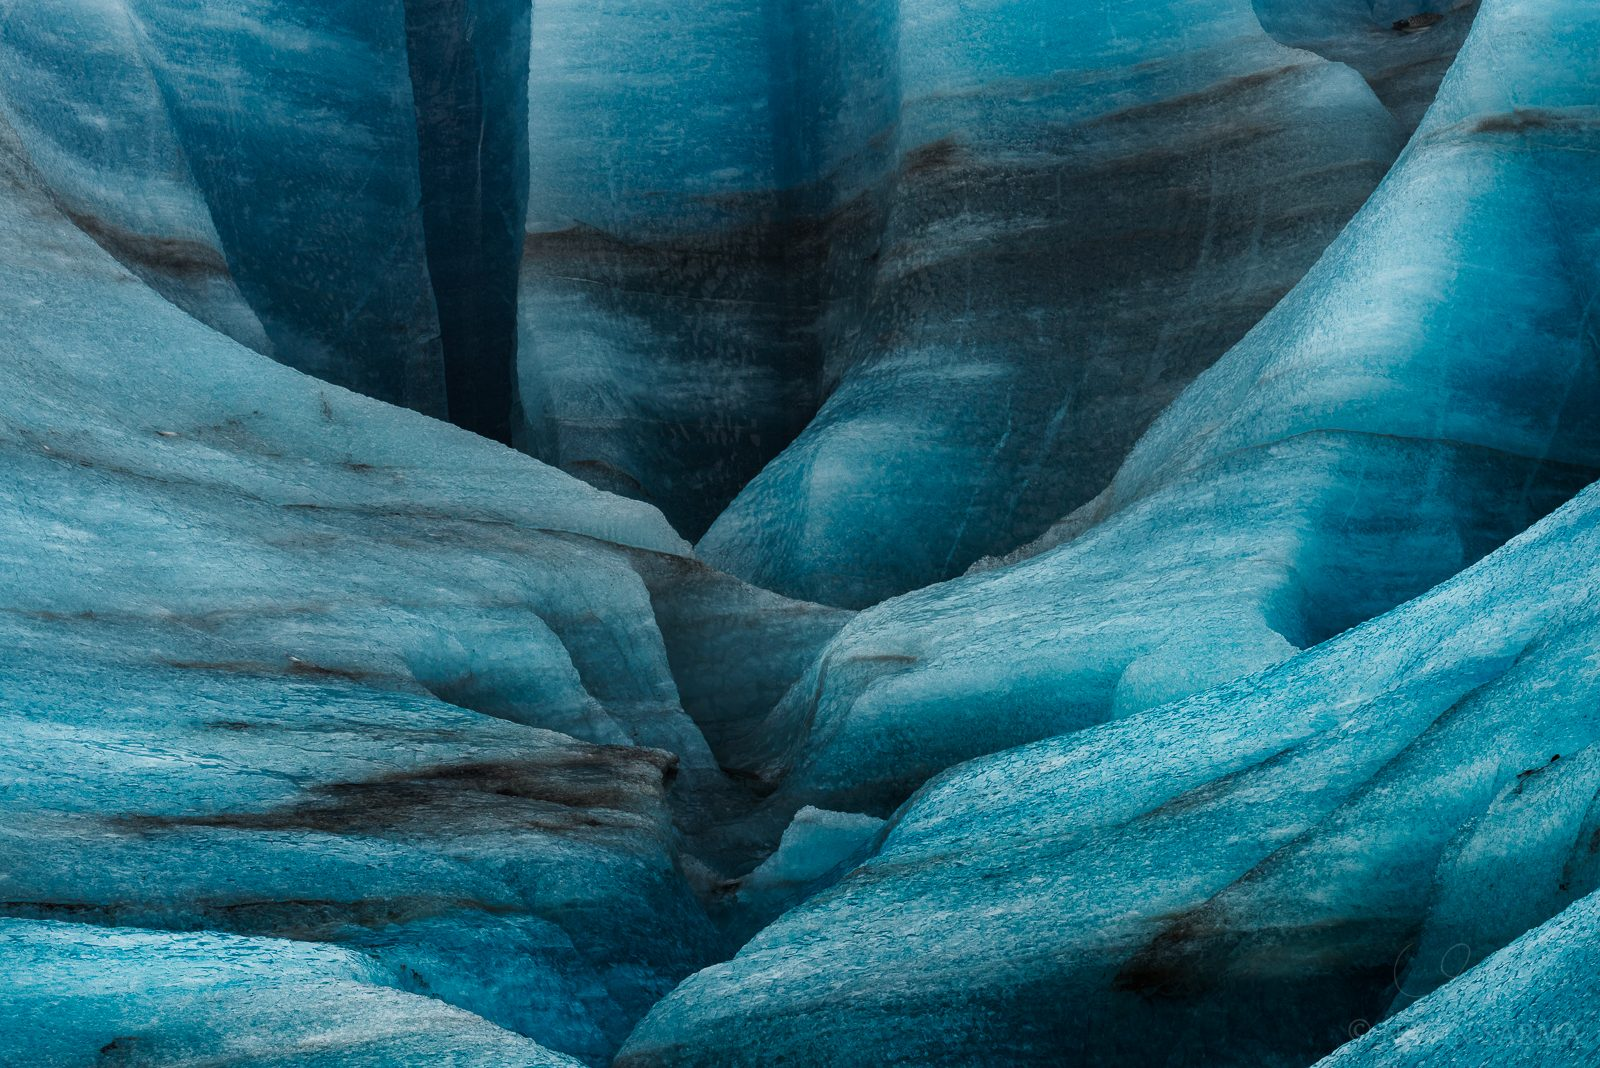 Ice Canyon - A closeup of an ice canyon crevasse atop the Vatnajökull glacier